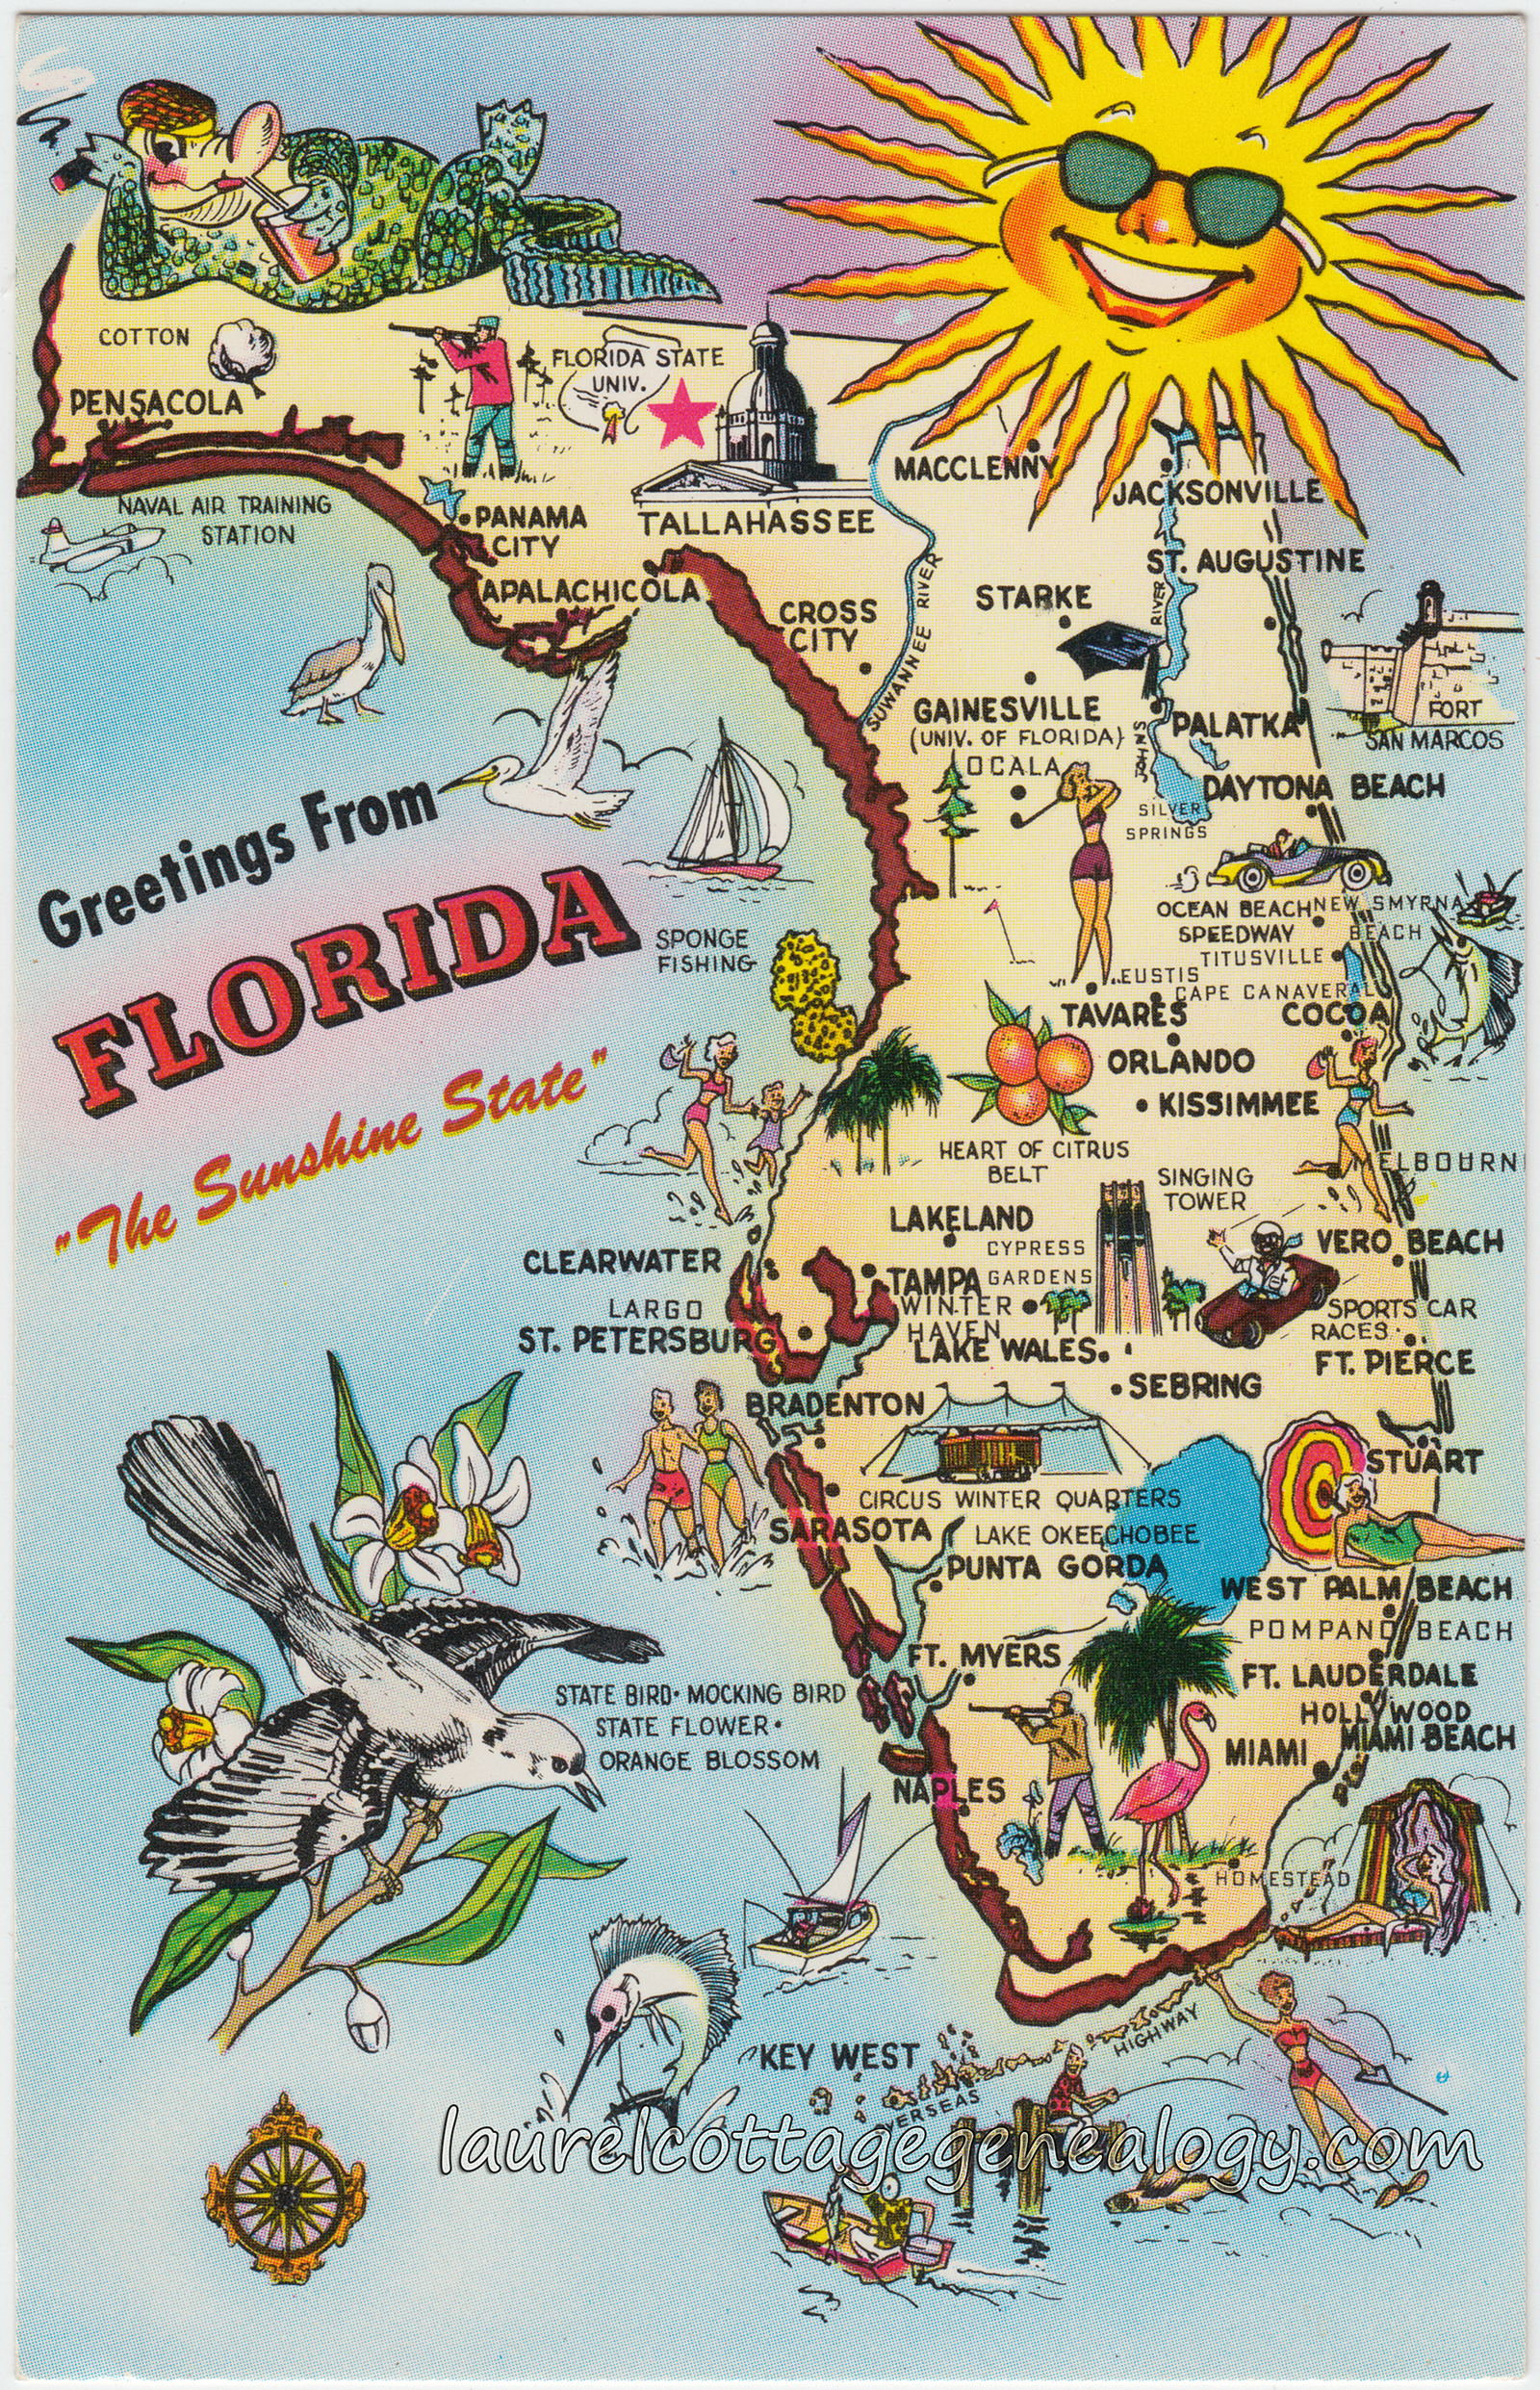 Greetings from florida laurel cottage genealogy greetings from florida pc1 kristyandbryce Image collections